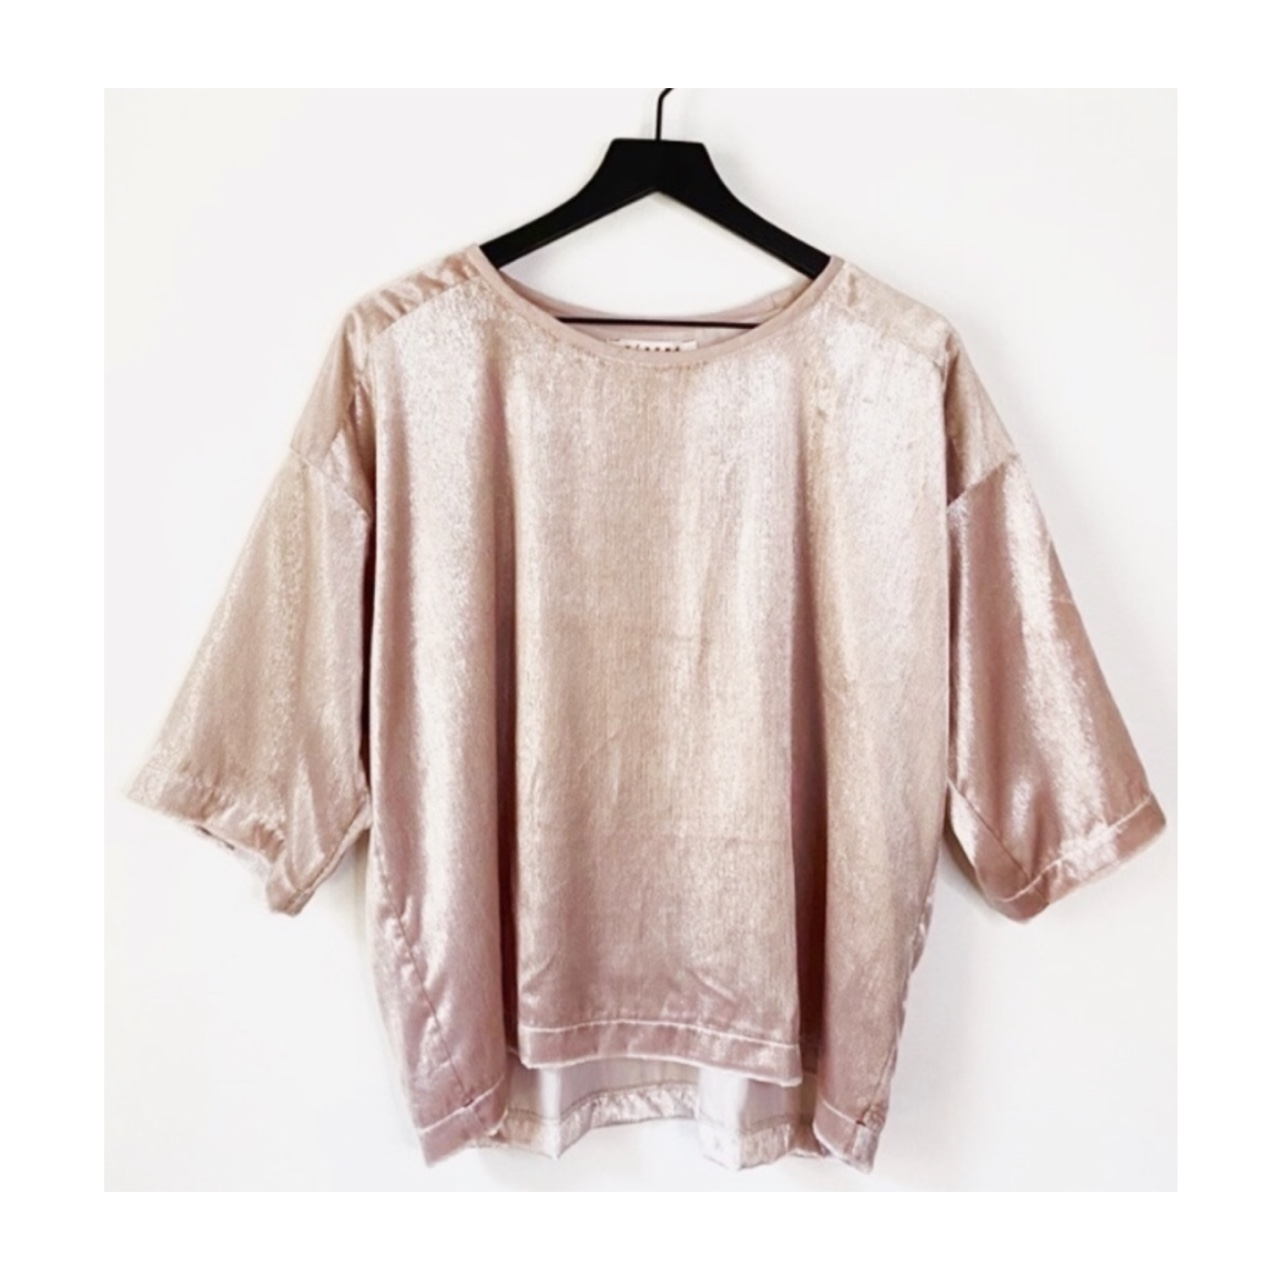 Product Image 1 - Slouchy modern velvet tee with